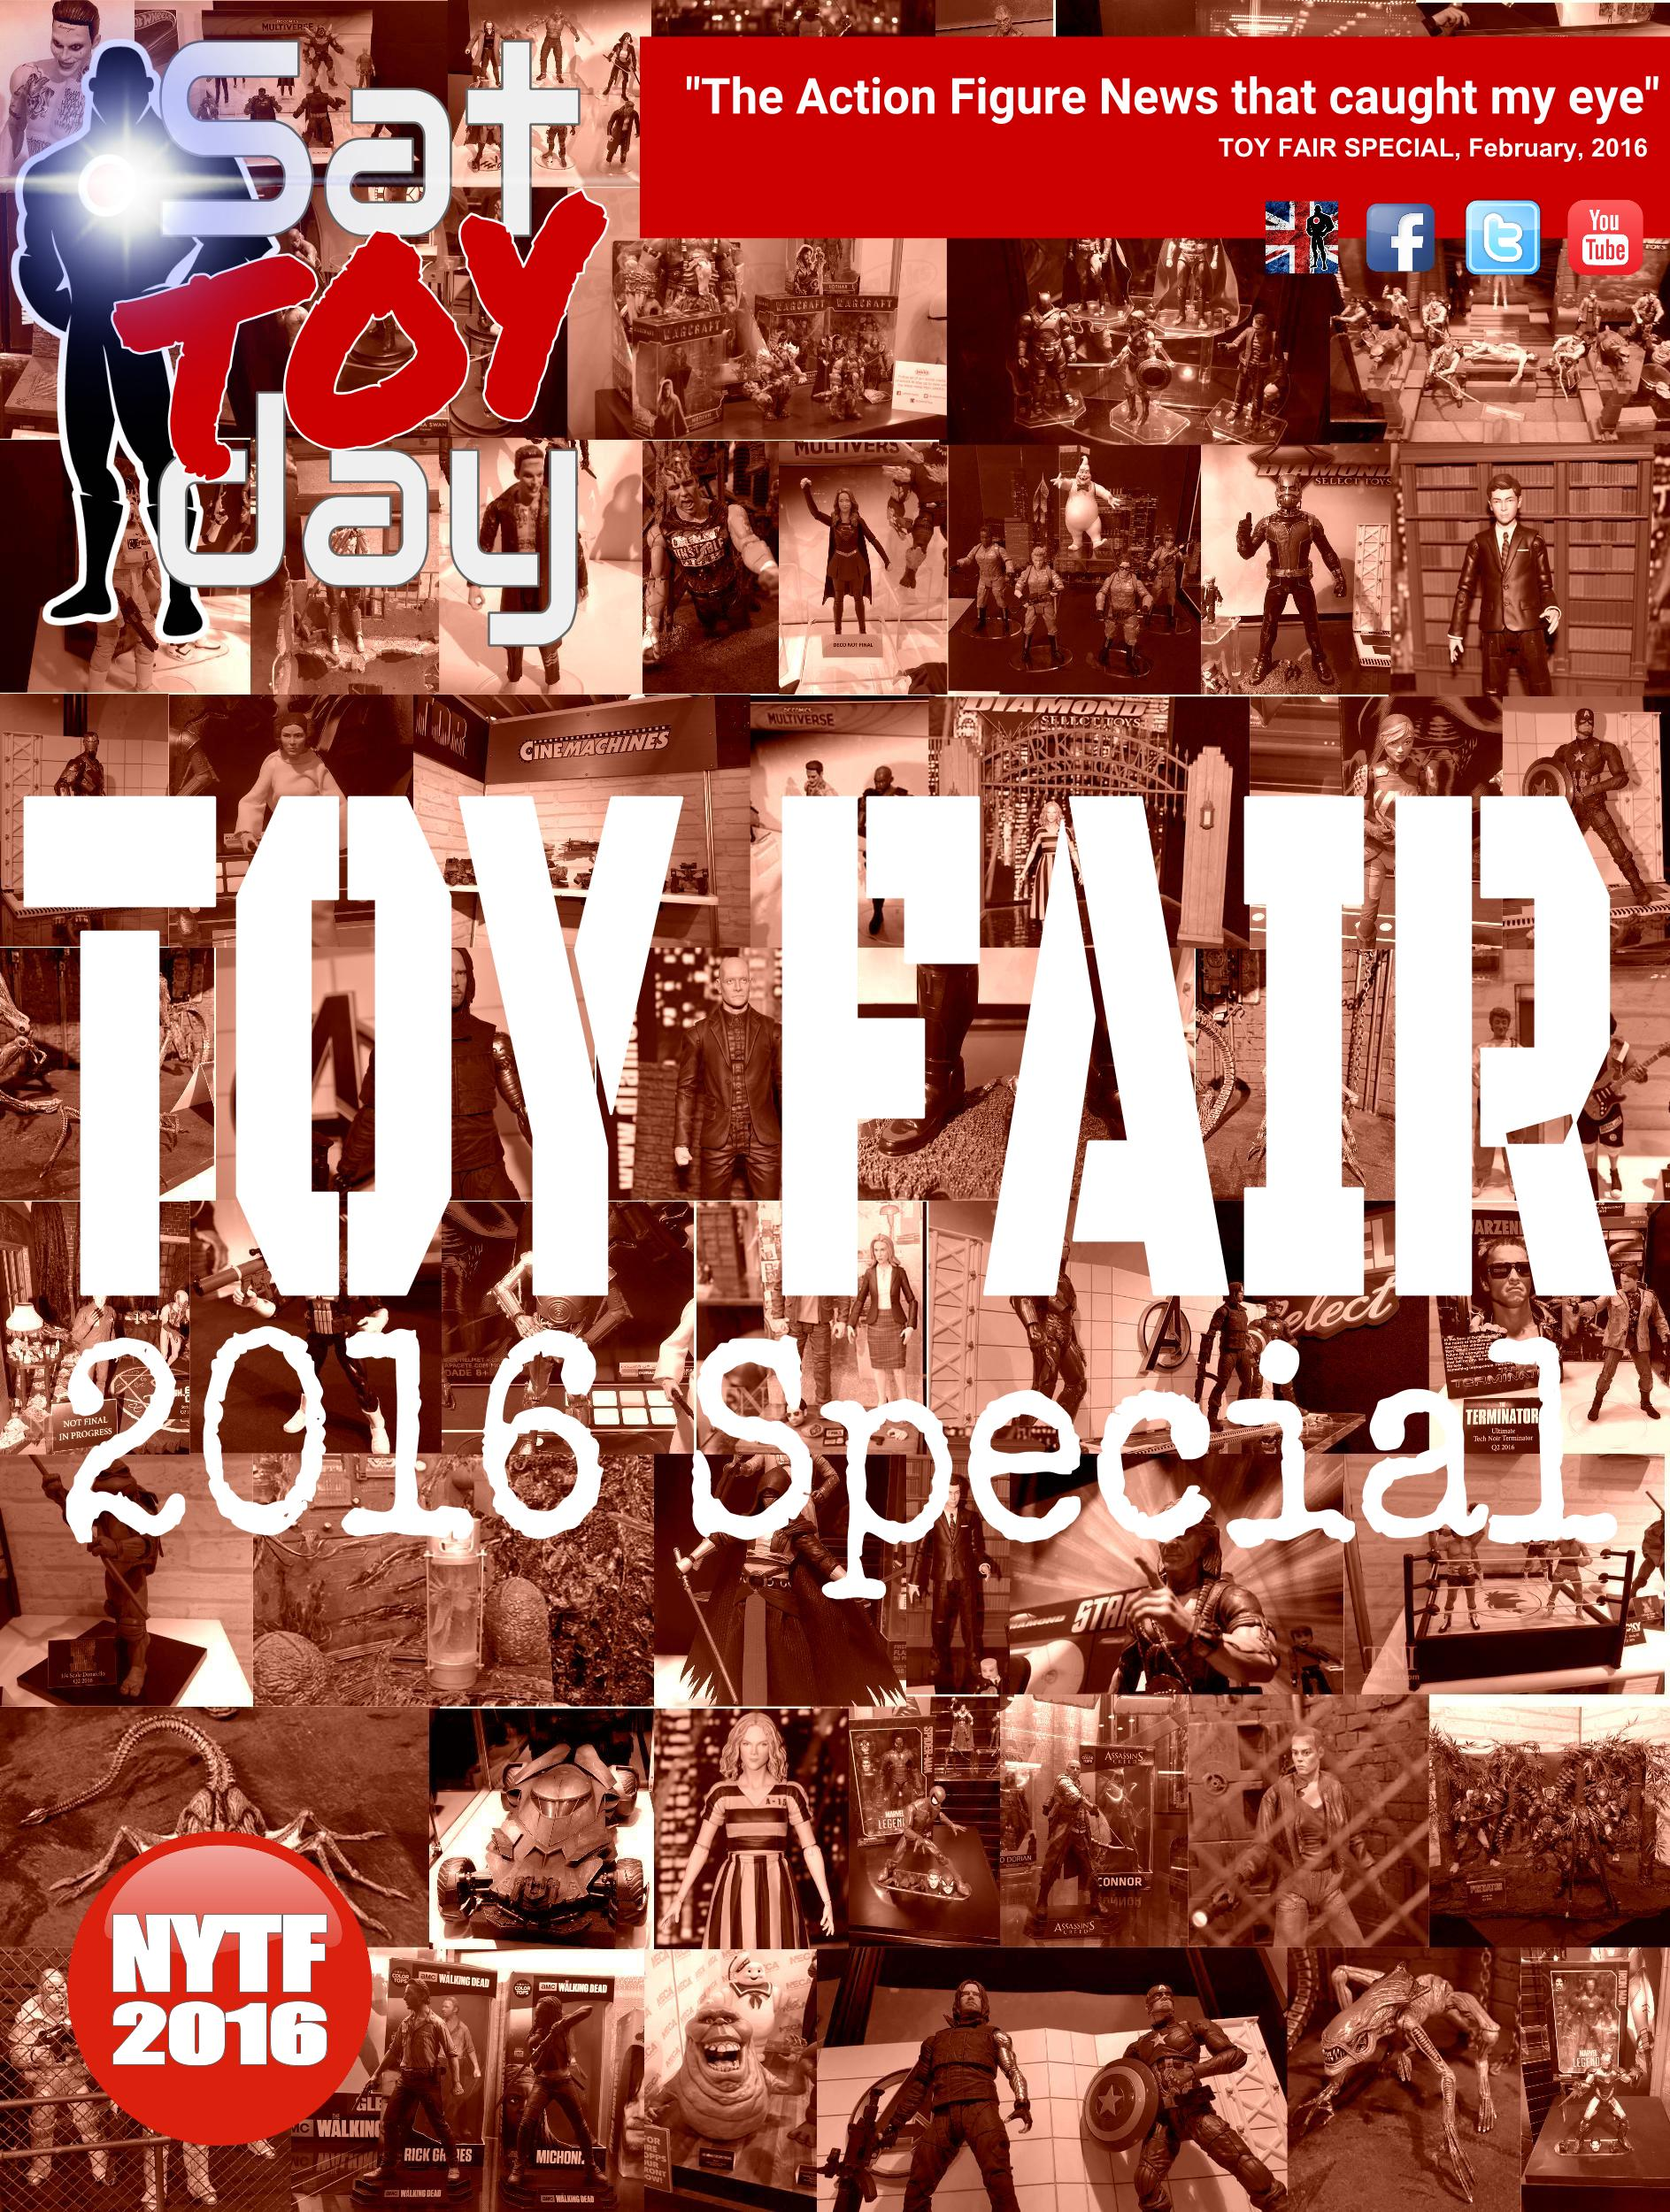 013a TOY FAIR SPECIAL Action Figure Sat-TOY-day News, February 2016